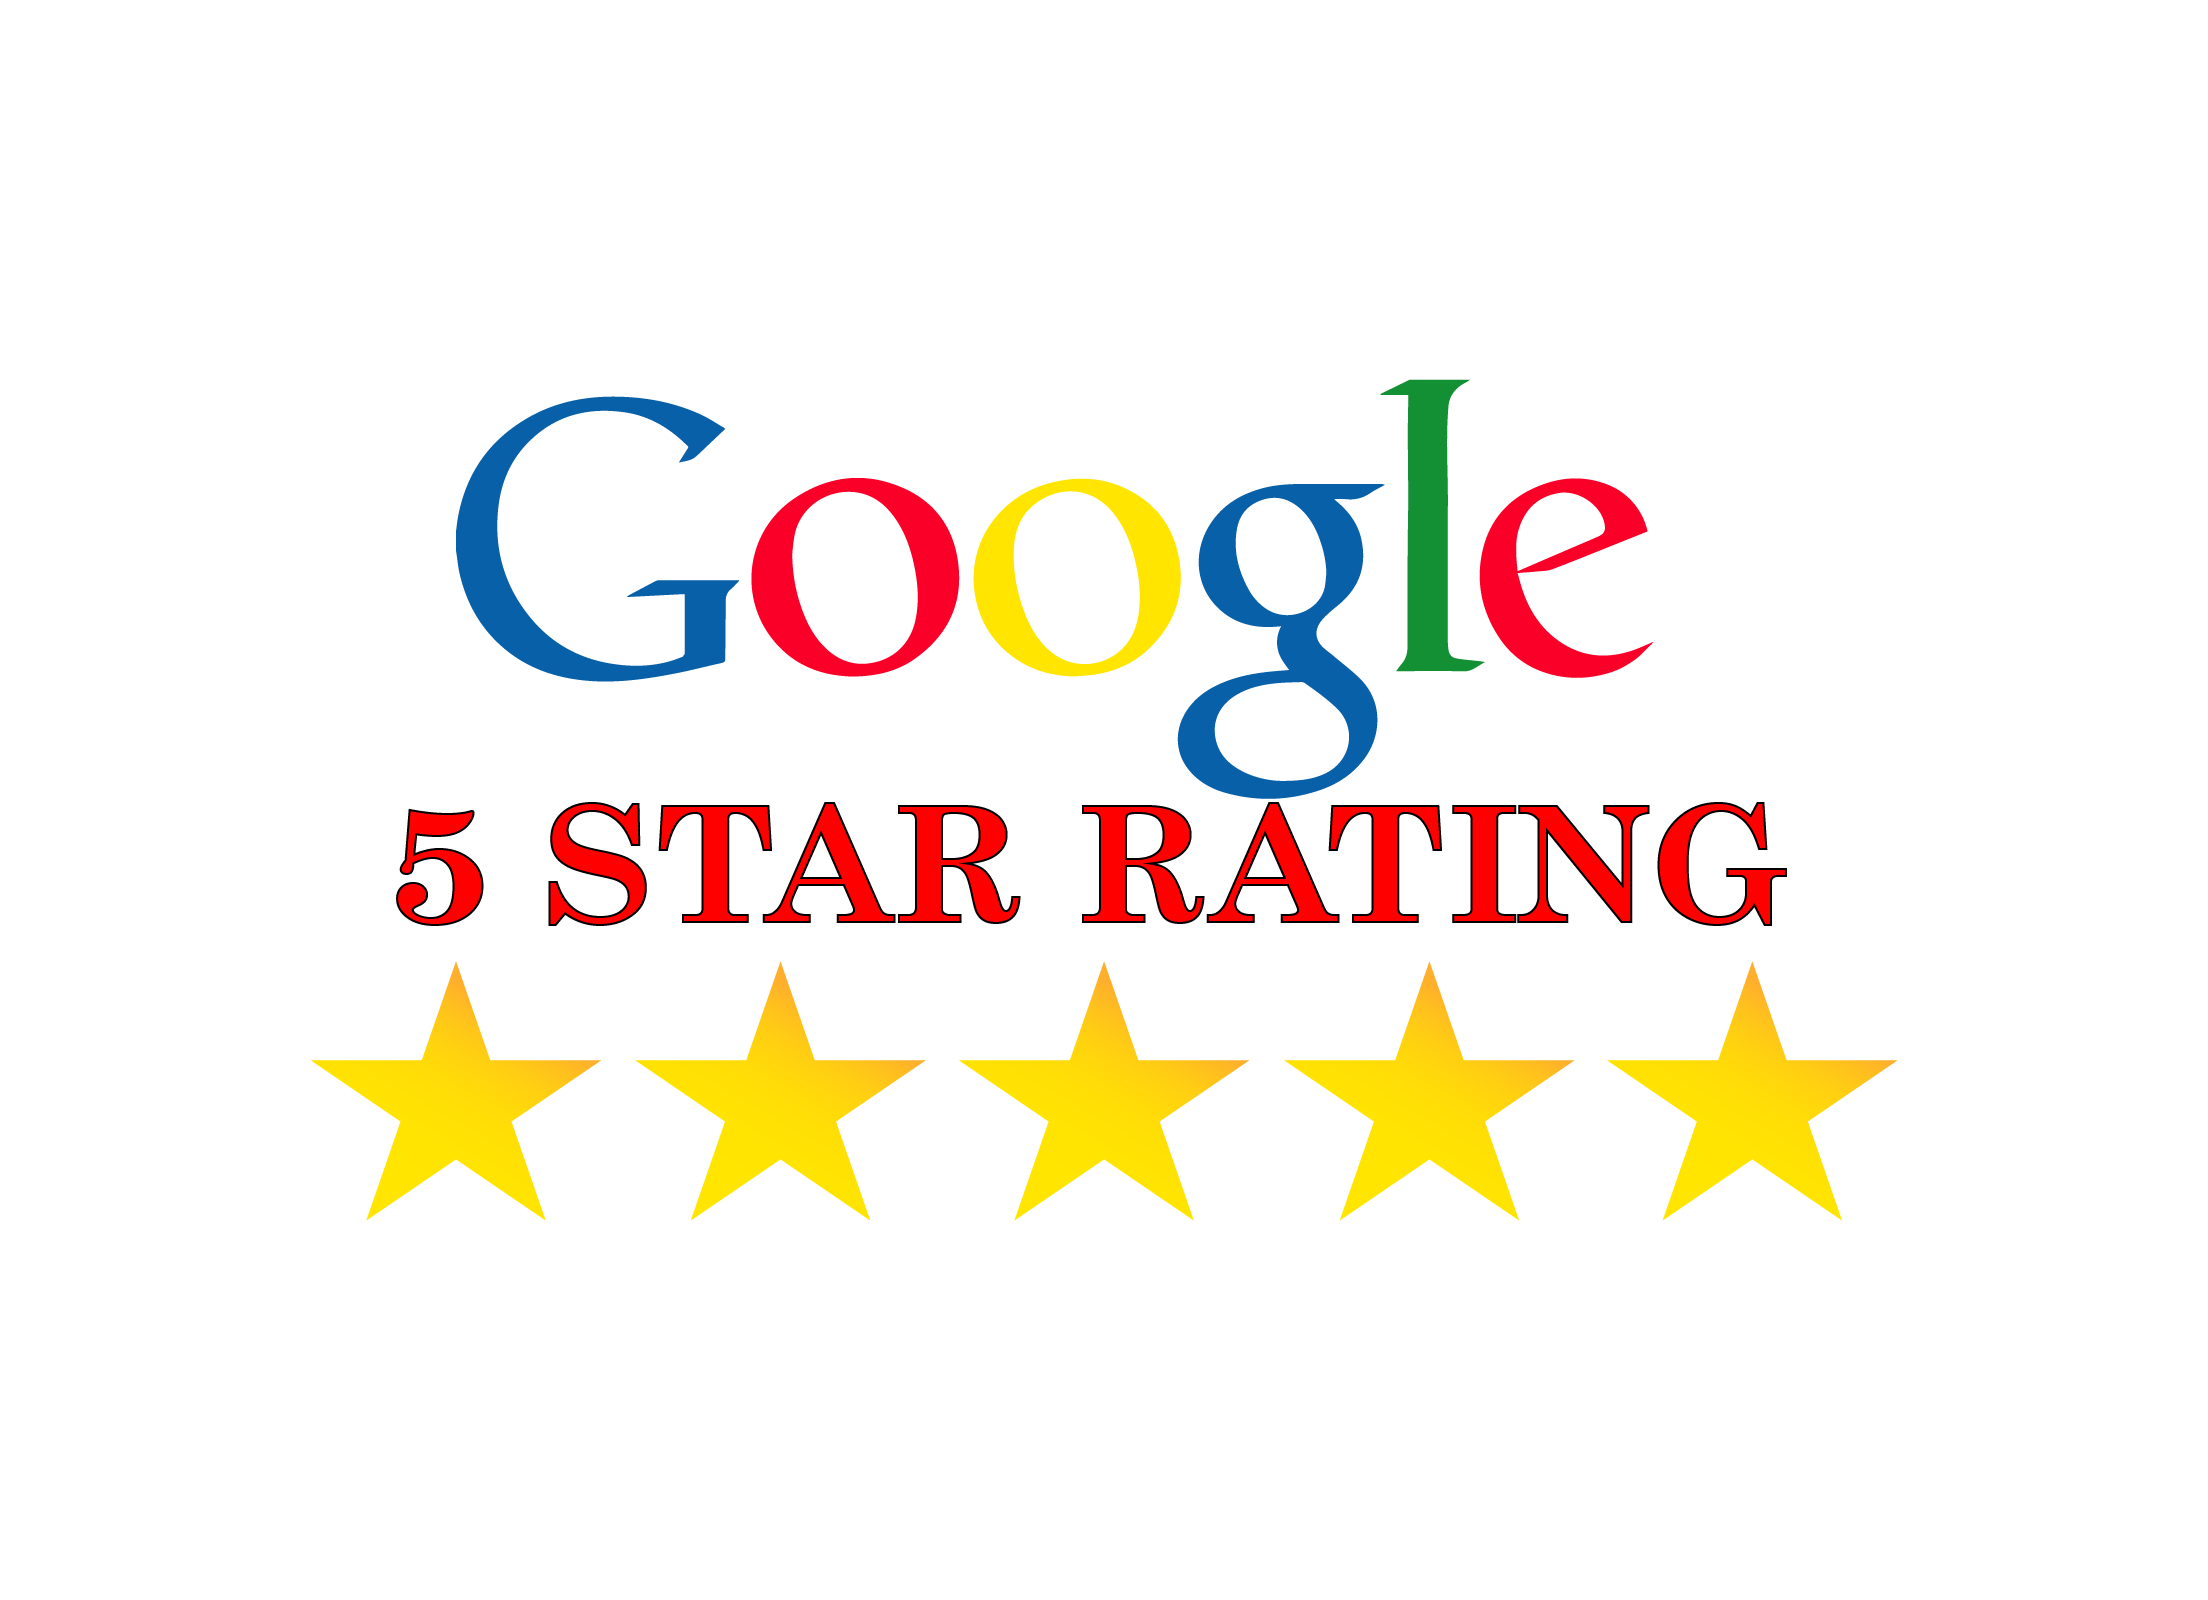 review business on google